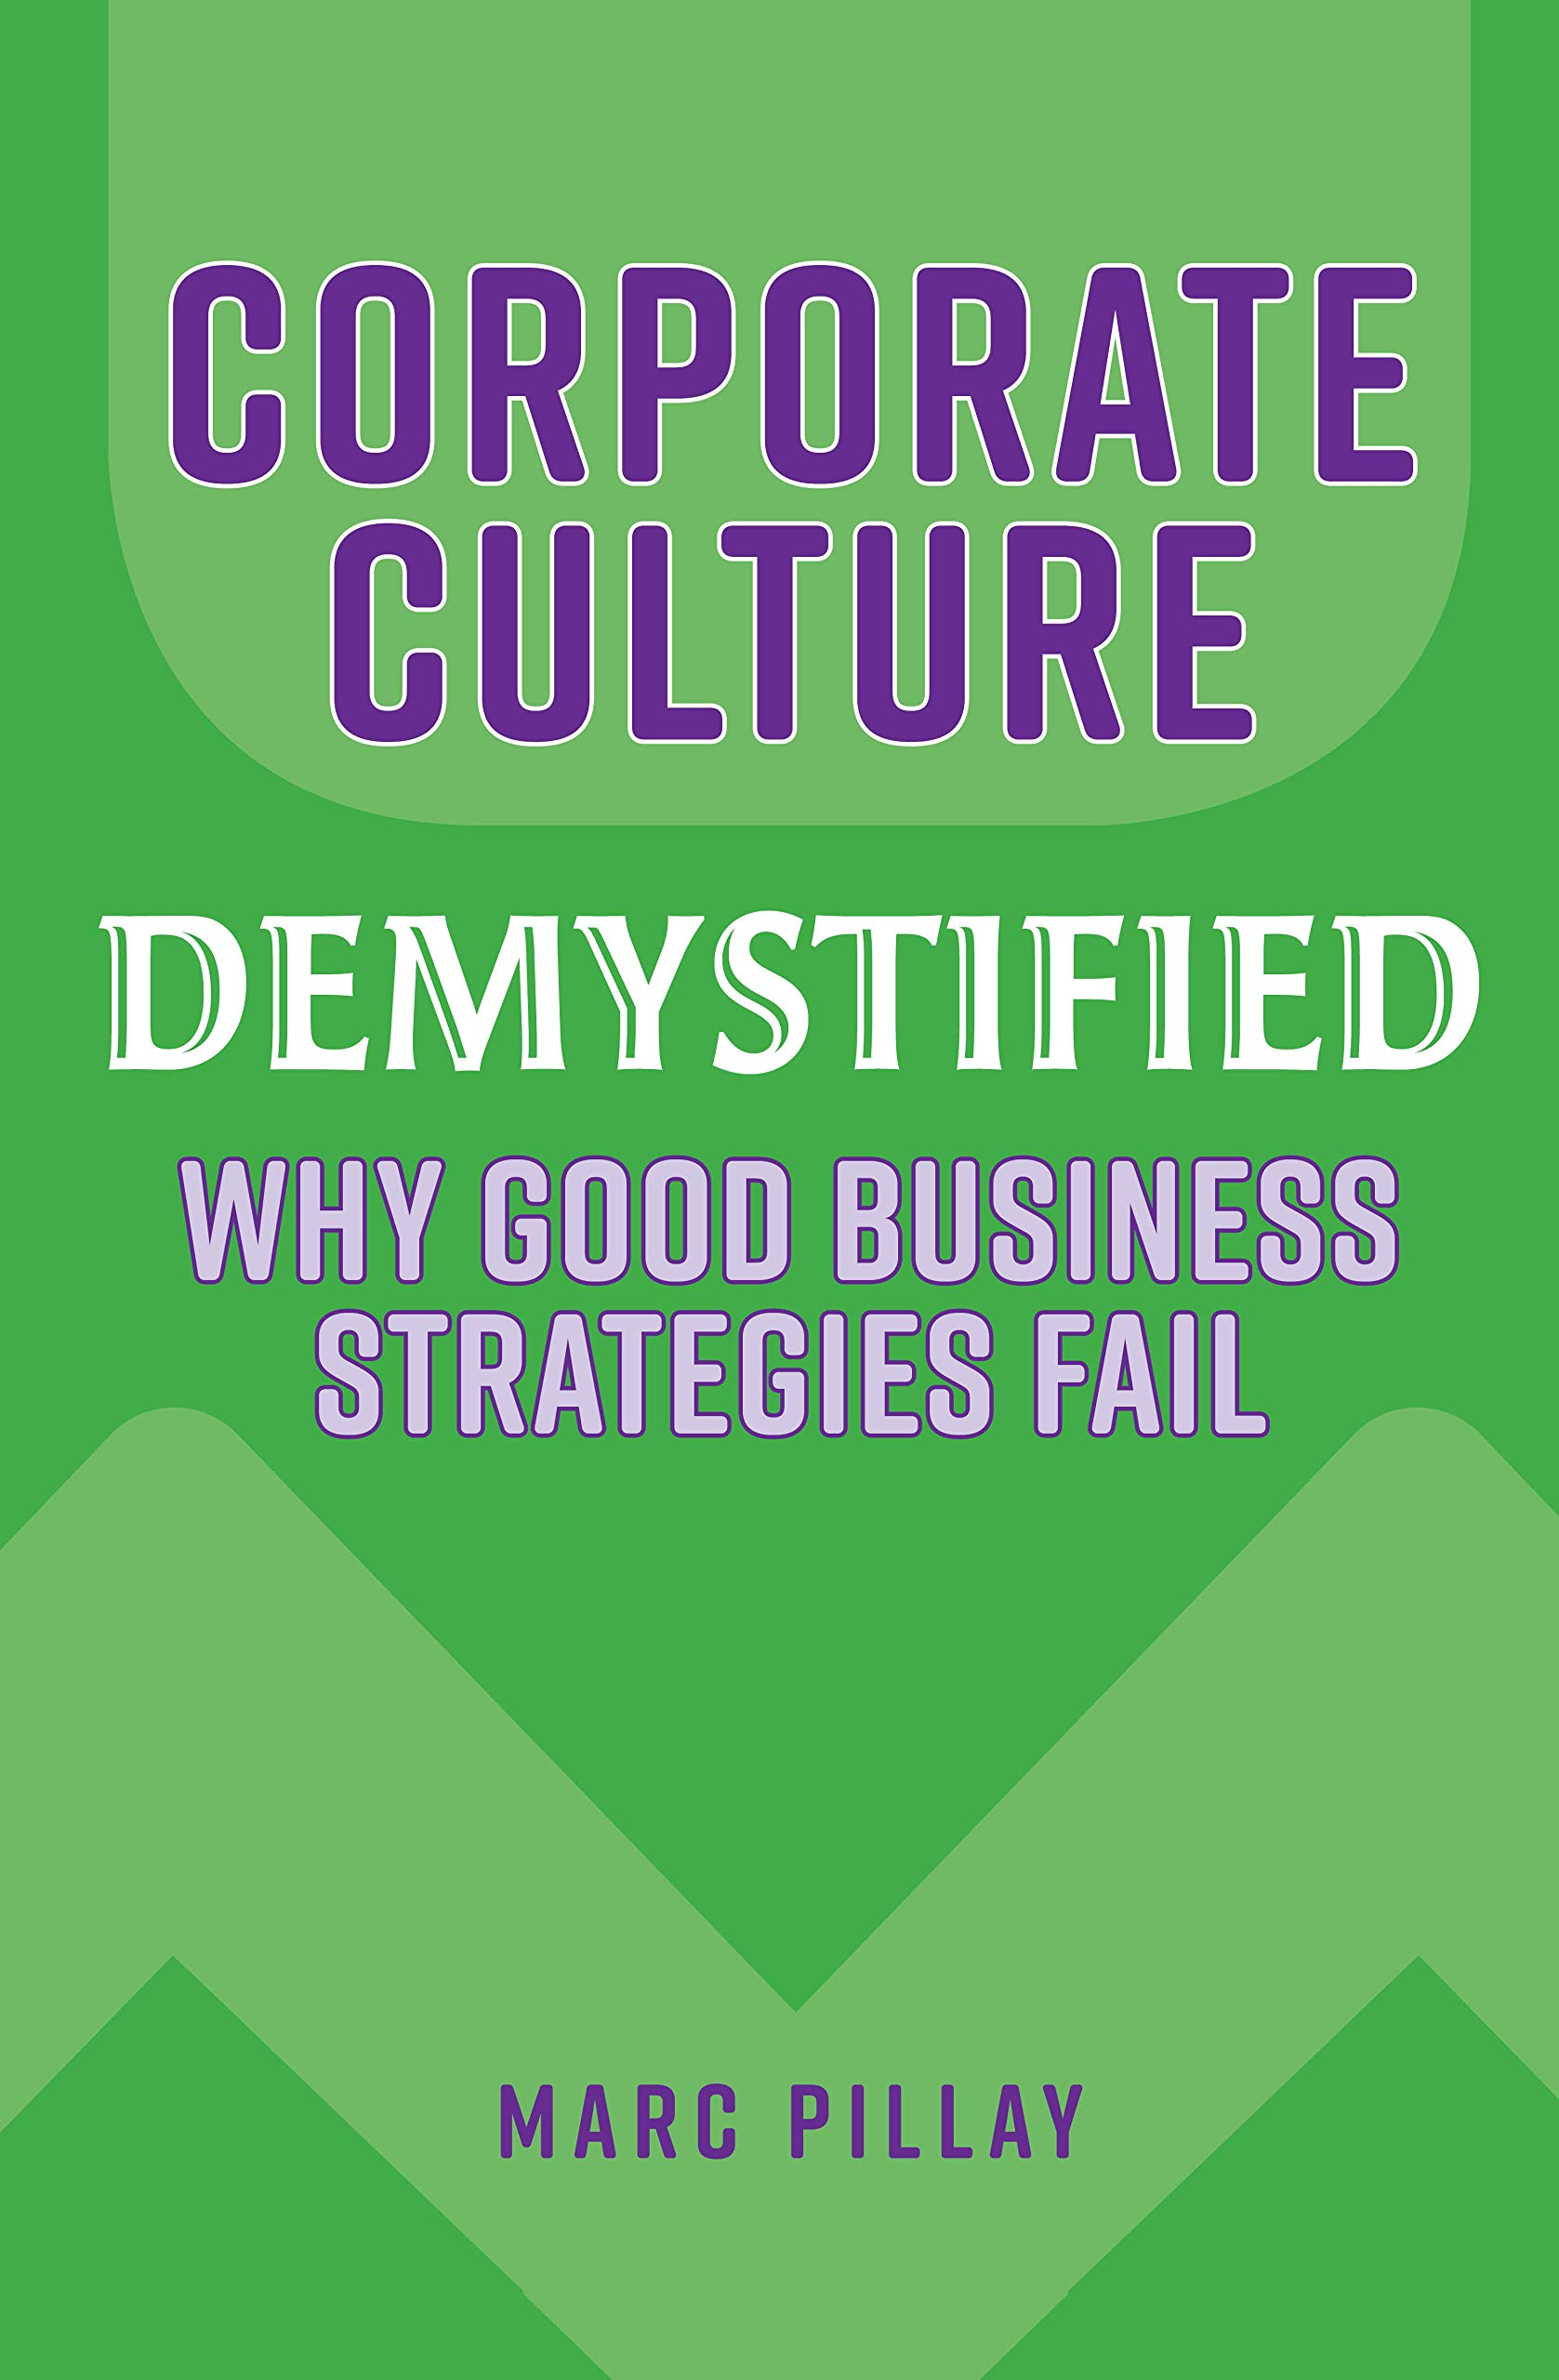 Corporate Culture Demystified: Why good business strategies fail (Demystified Series Book 2)